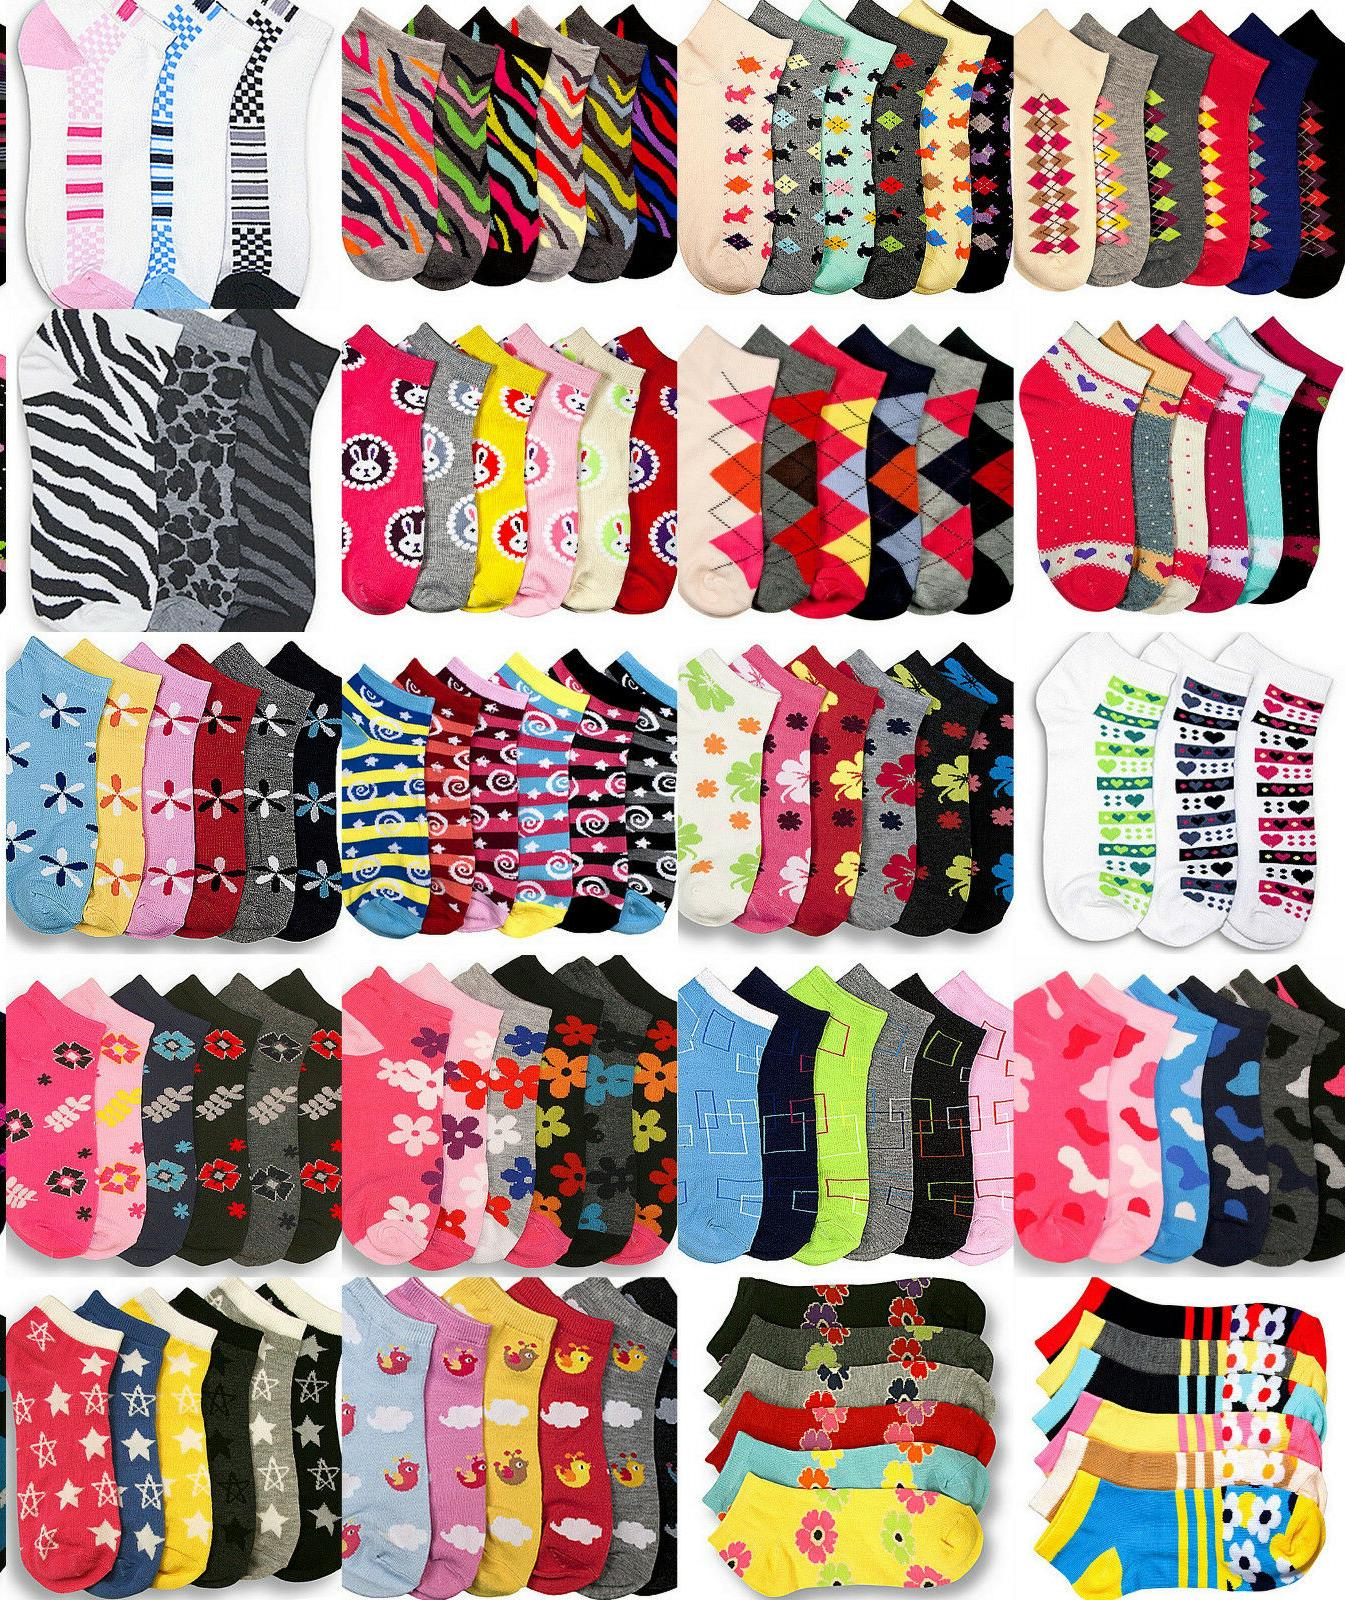 Novelty Socks Girls Sock Size 6-8 Anklet Low Cut Assorted De